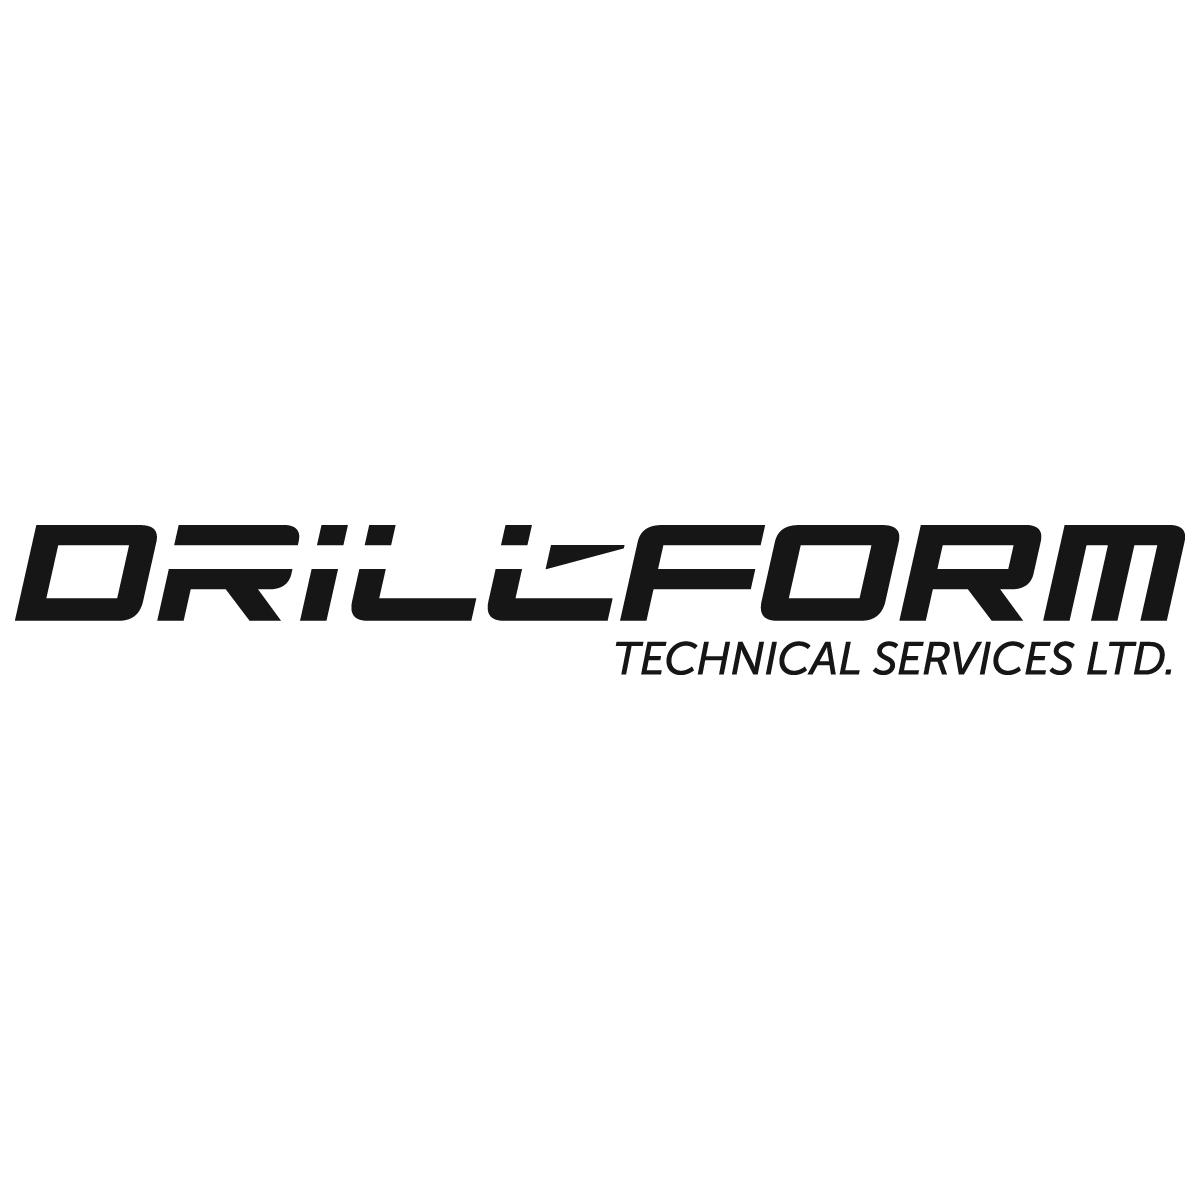 Drillform Technical Services Ltd. (O&G Services)